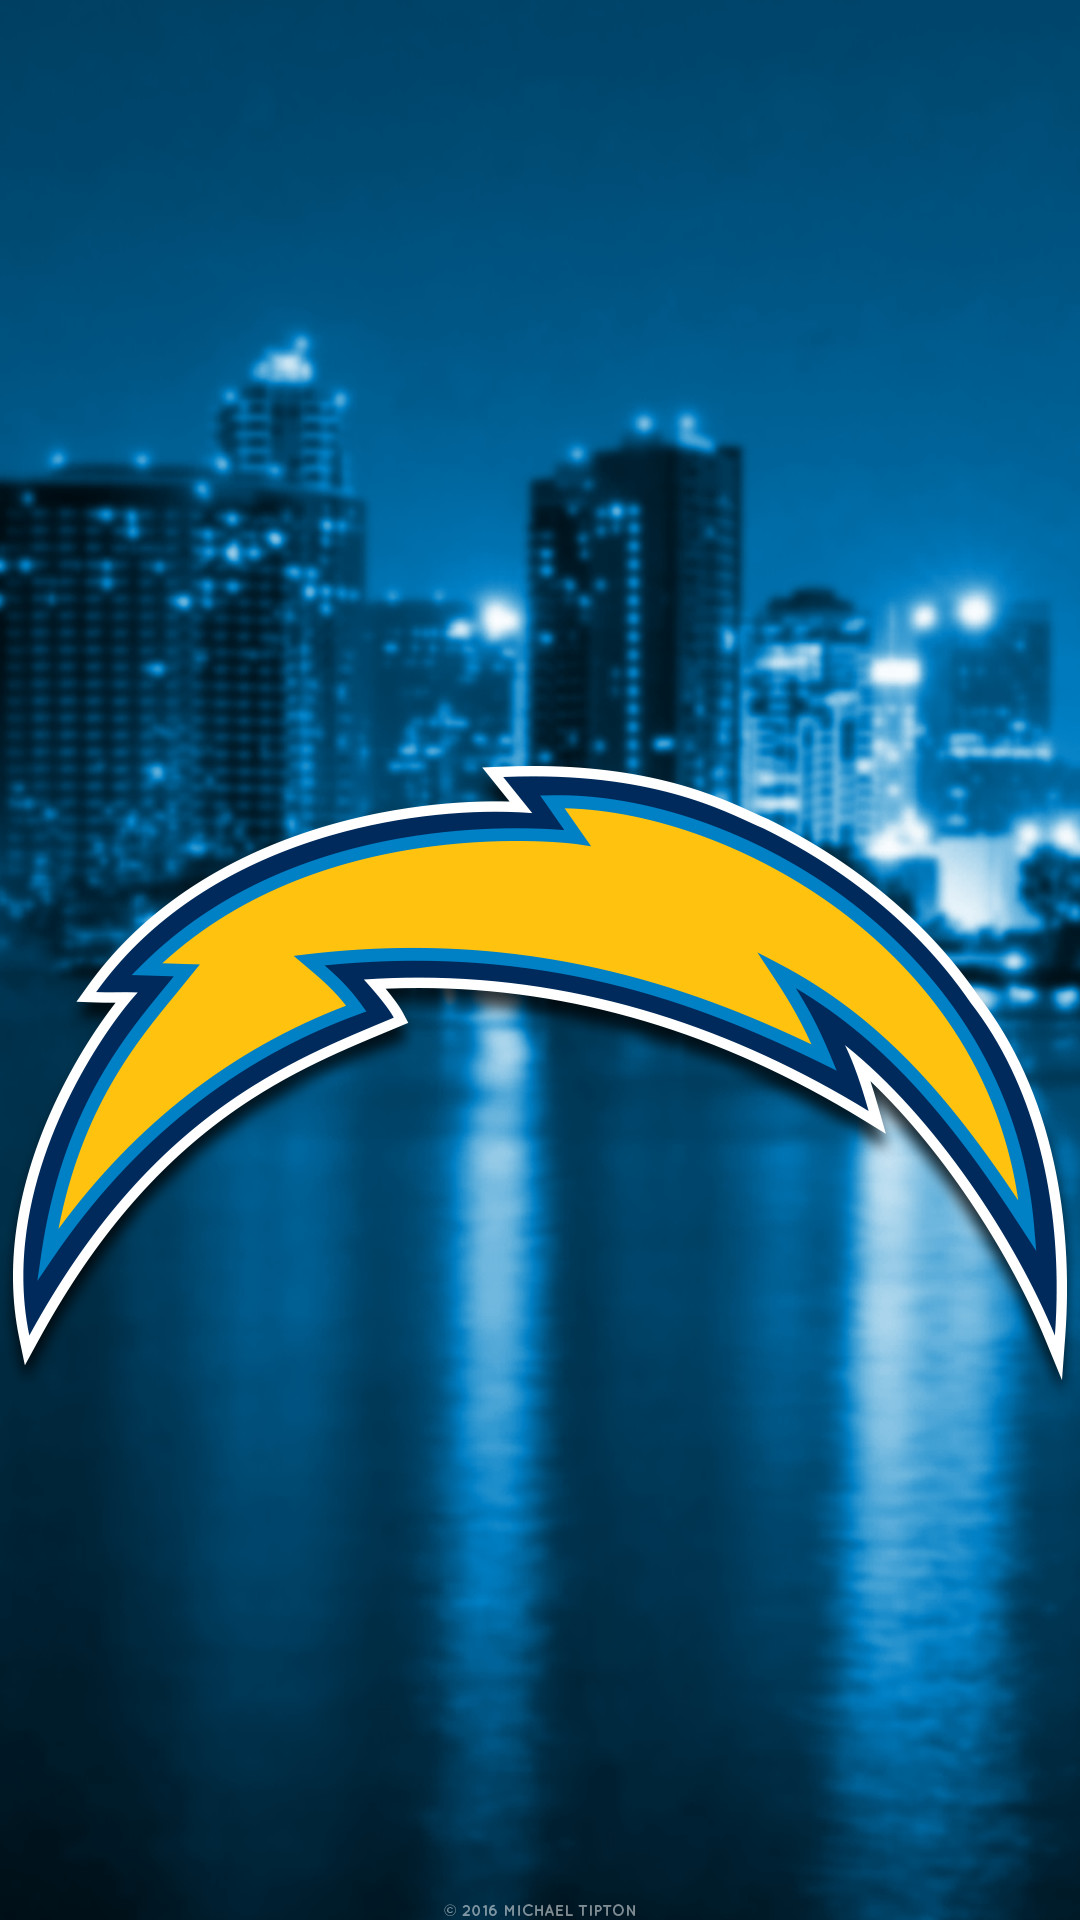 San Diego Chargers Iphone Wallpaper San Diego Chargers Wallpapers 183 ①